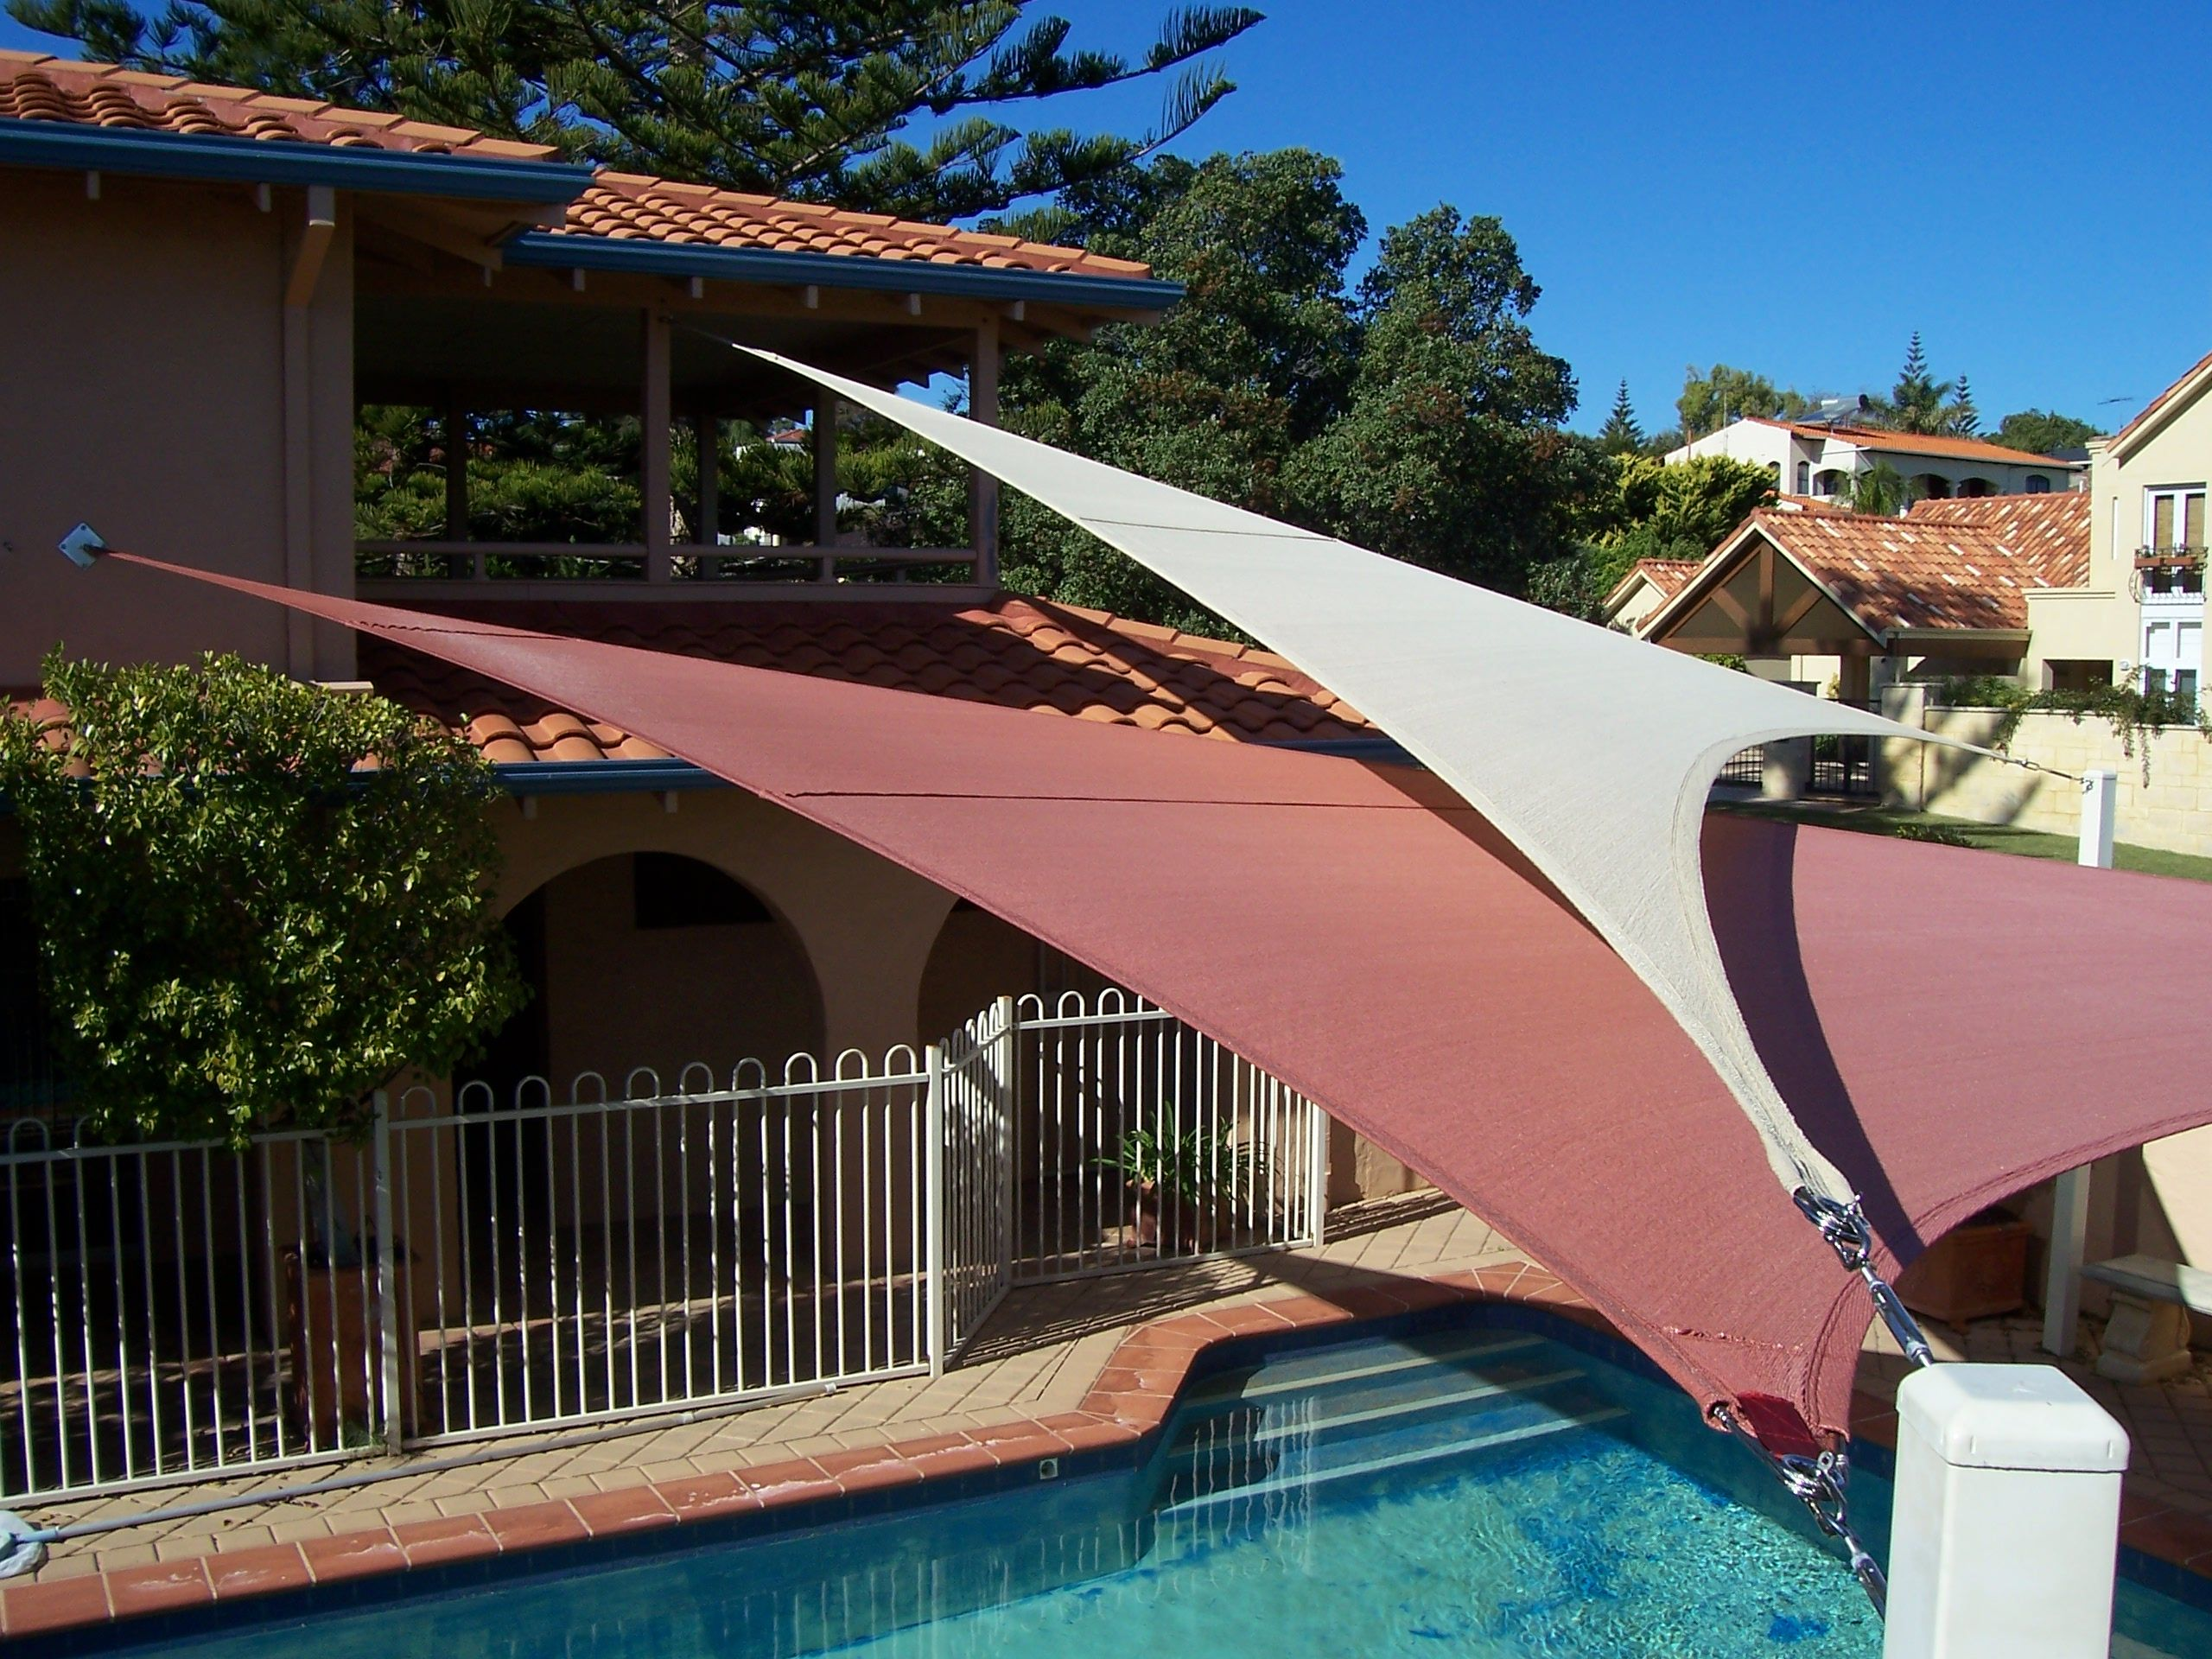 you shade a space your awnings for allow made sails retractable to custom patio create pin